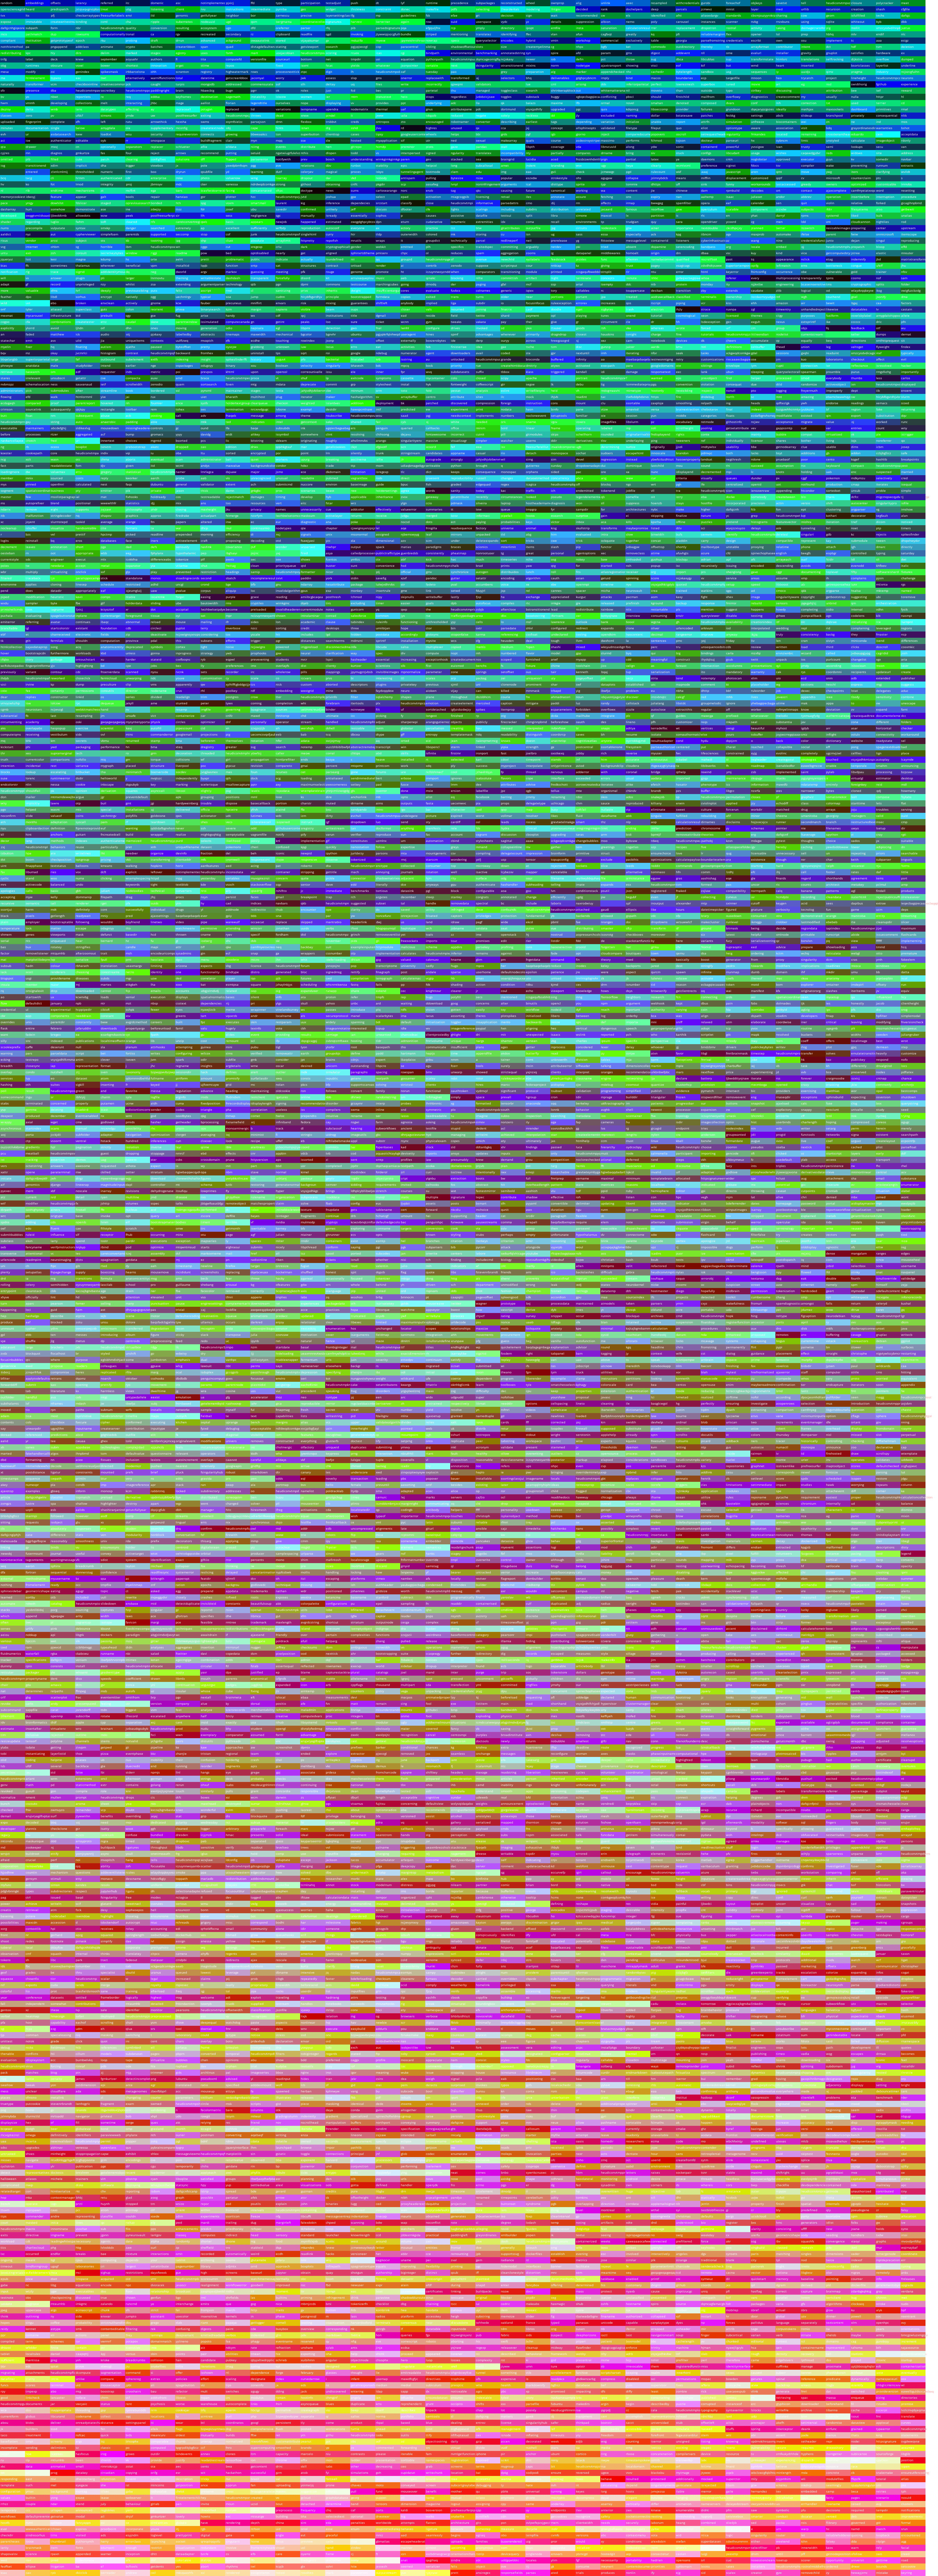 examples/img/colors-gradient.png